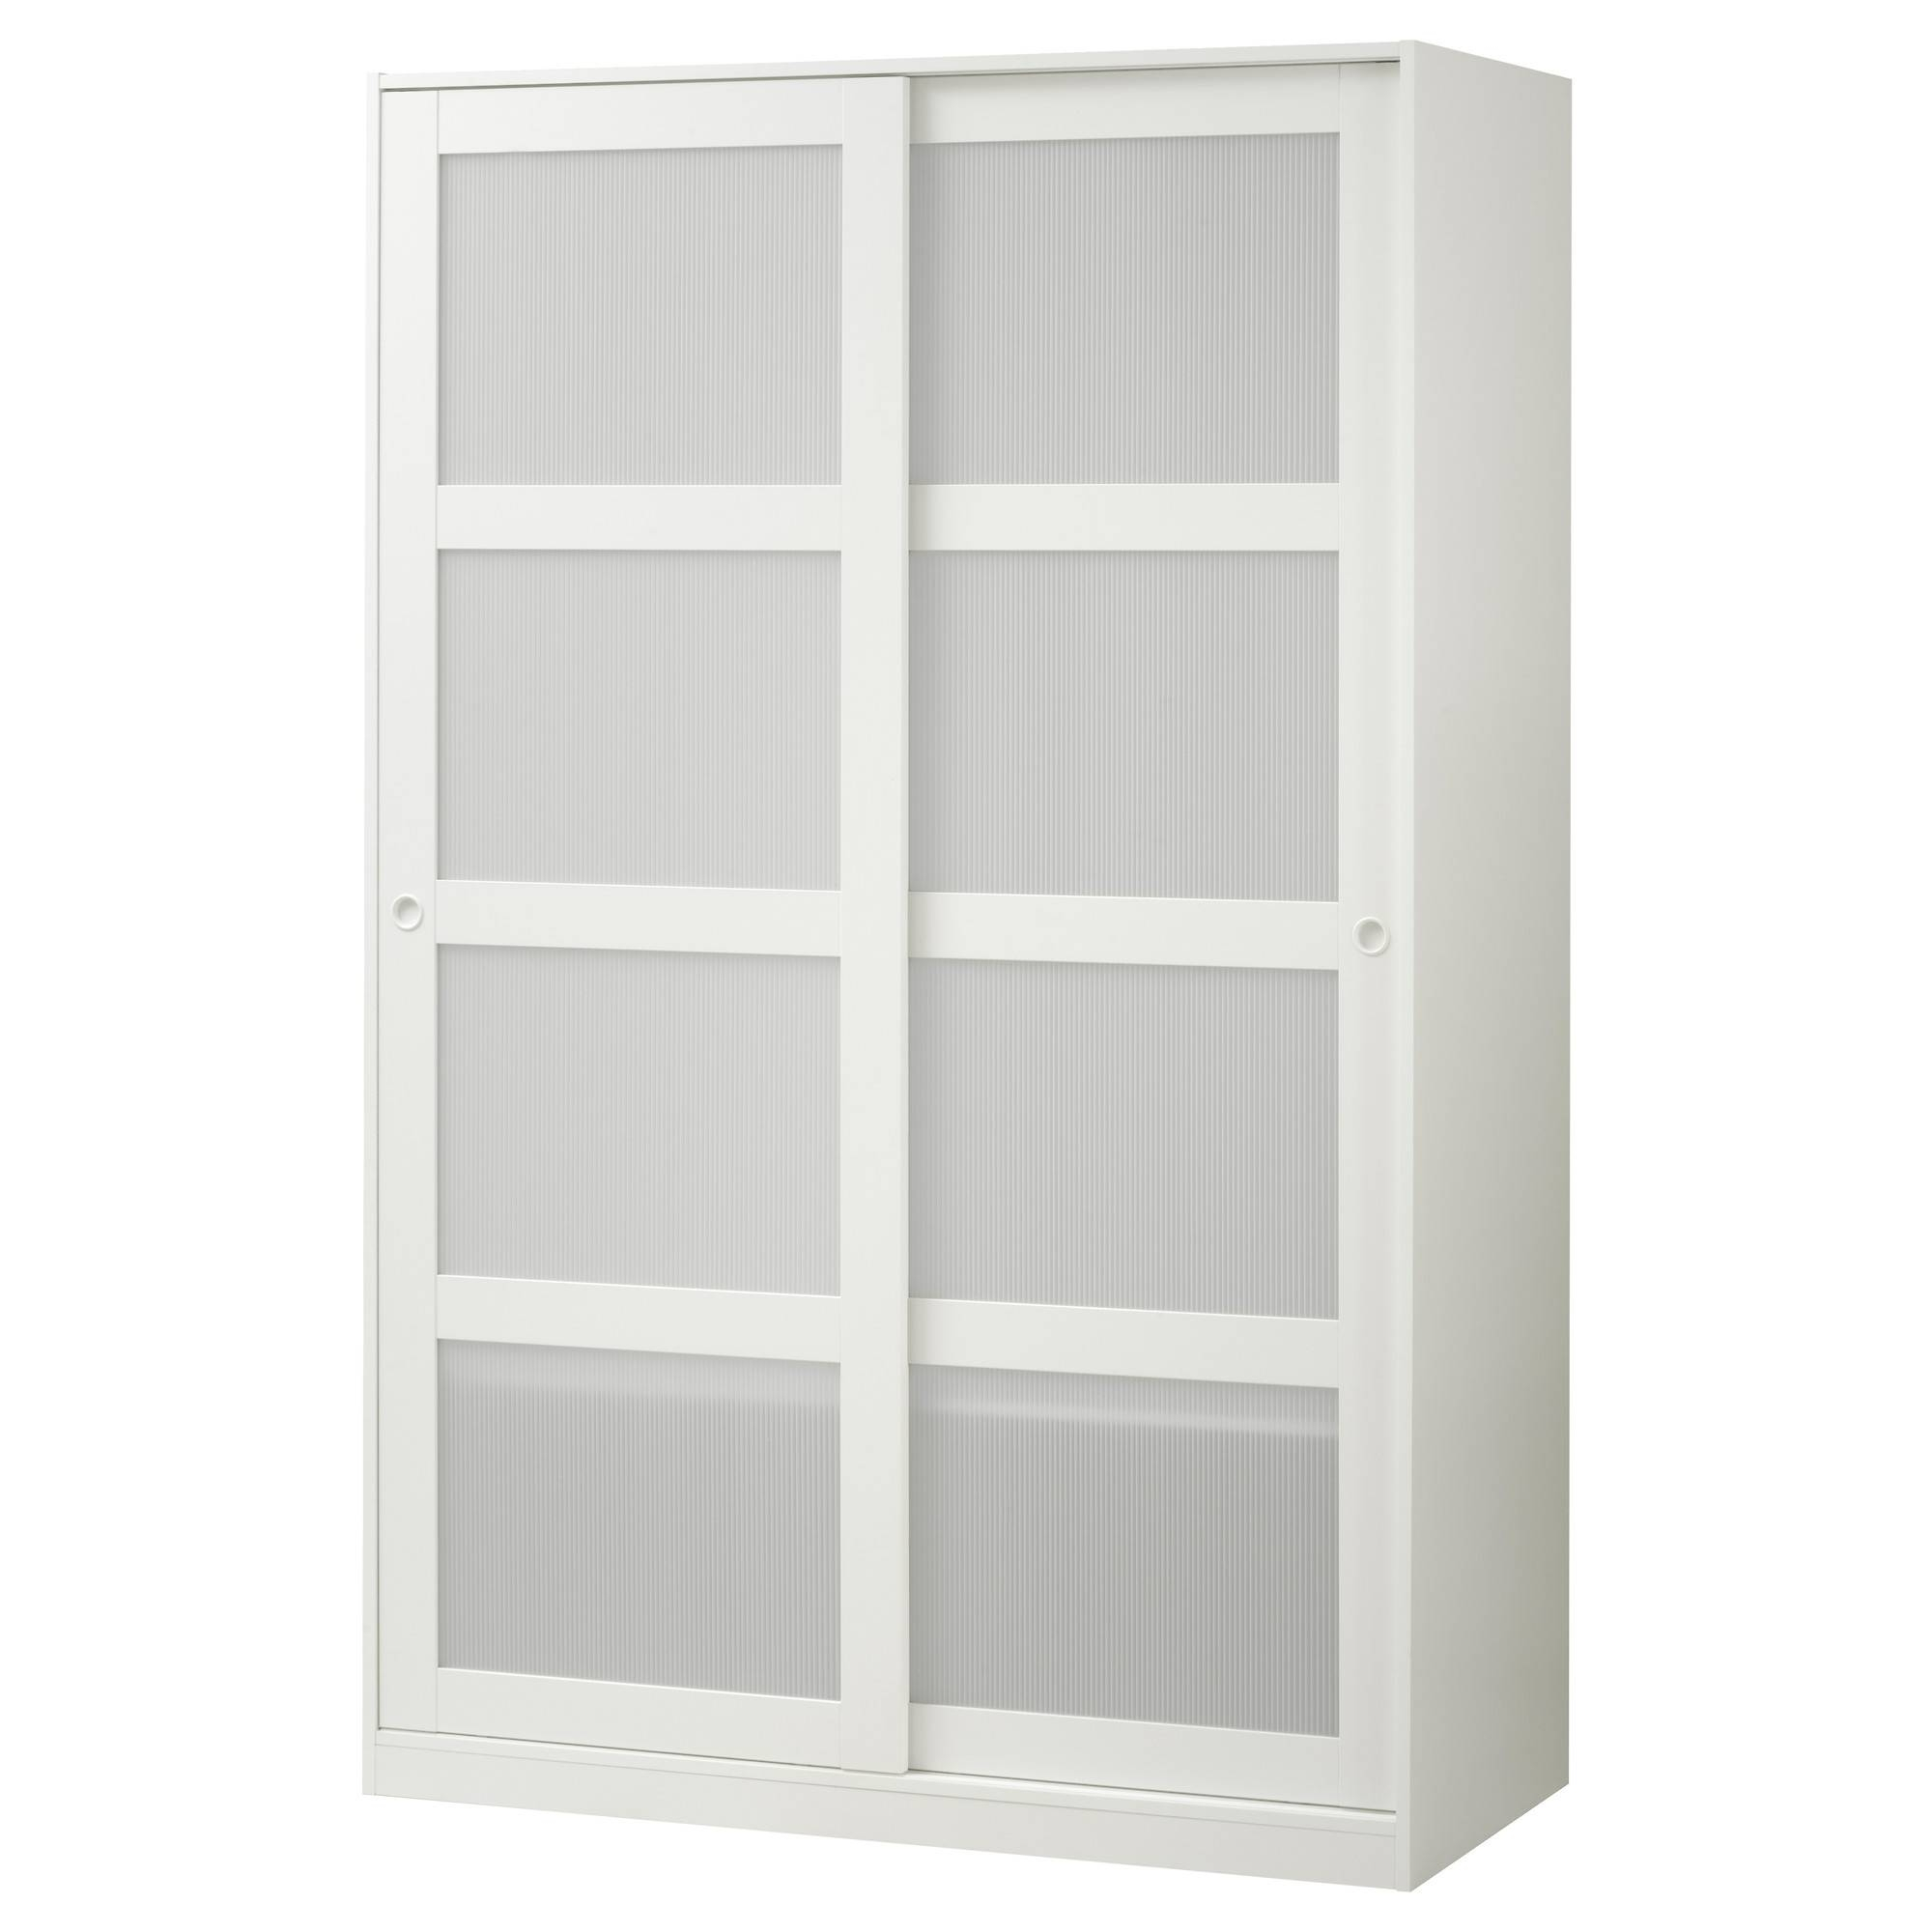 Kvikne Wardrobe With 2 Sliding Doors White 120X190 Cm - Ikea inside Wardrobes With 2 Sliding Doors (Image 9 of 15)